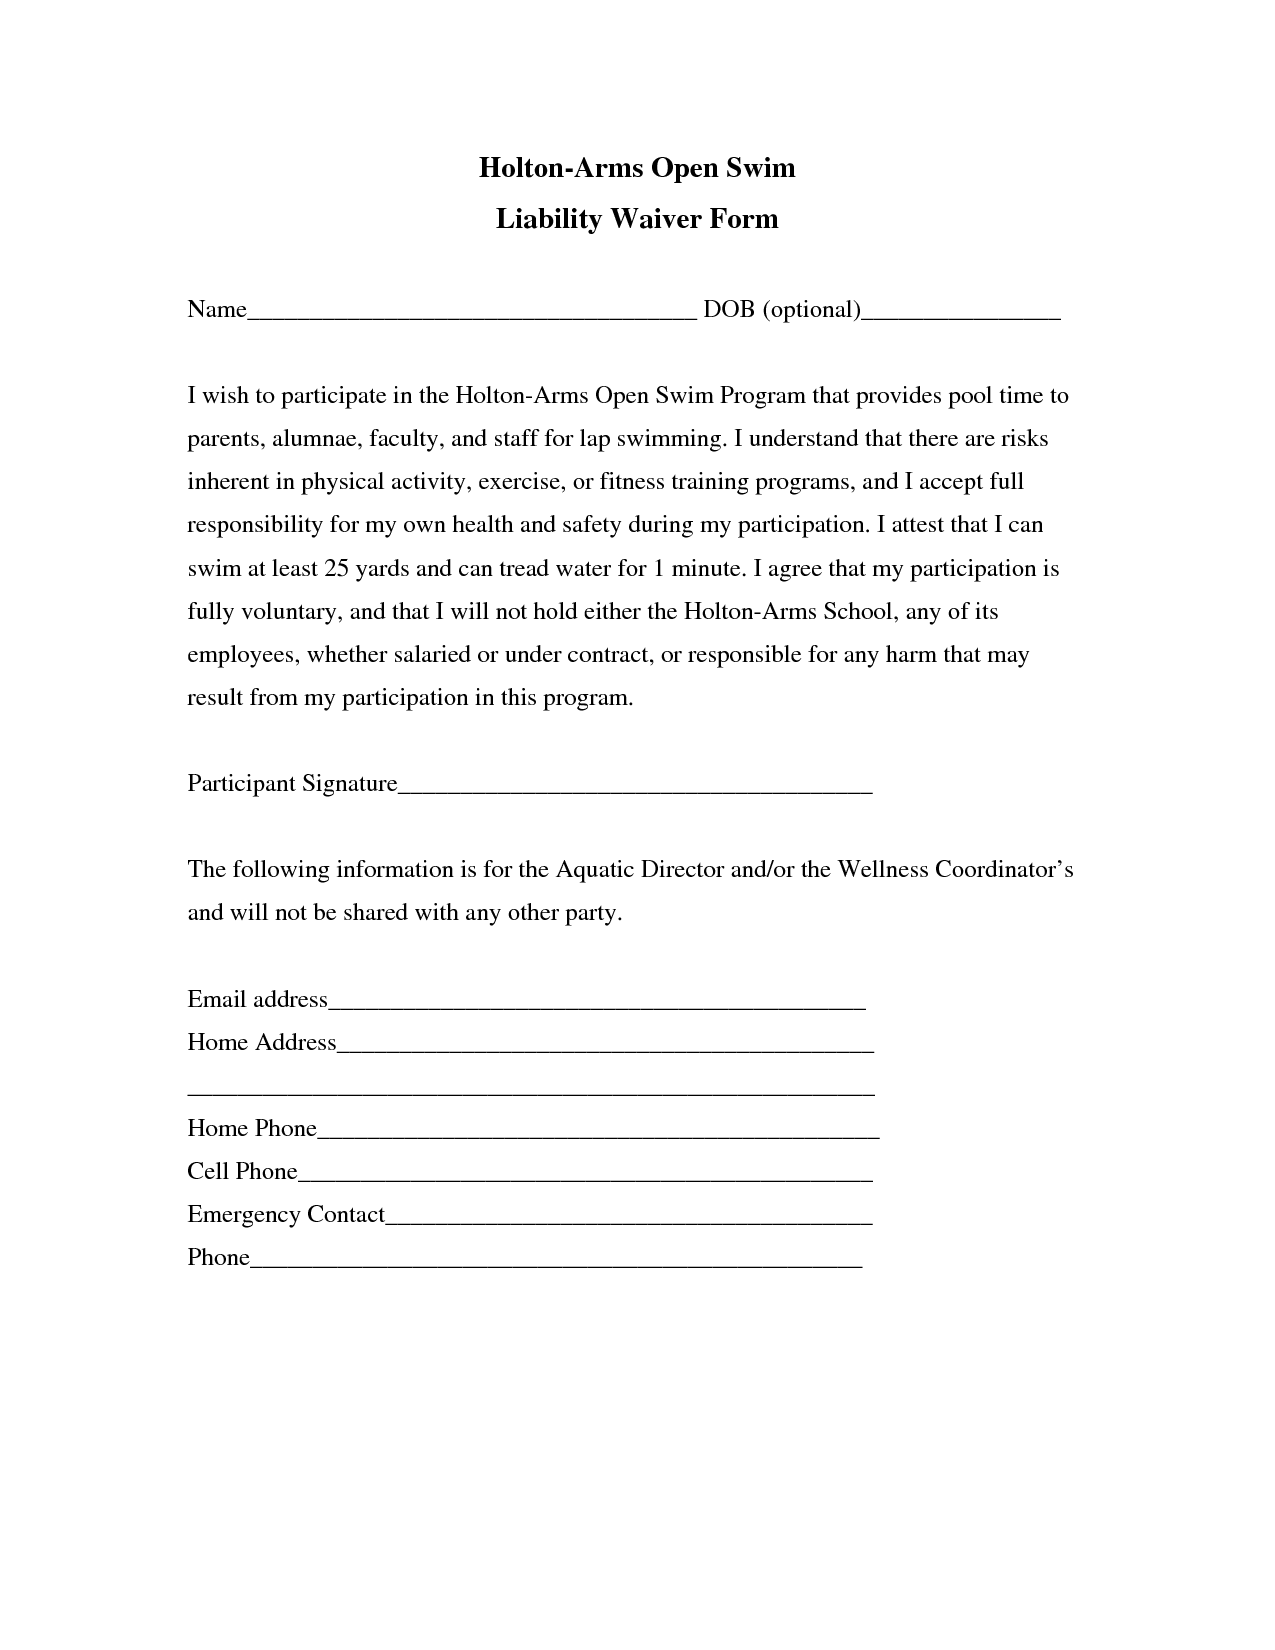 Liability Insurance Liability Insurance Waiver Template – Waiver of Liability Form Free